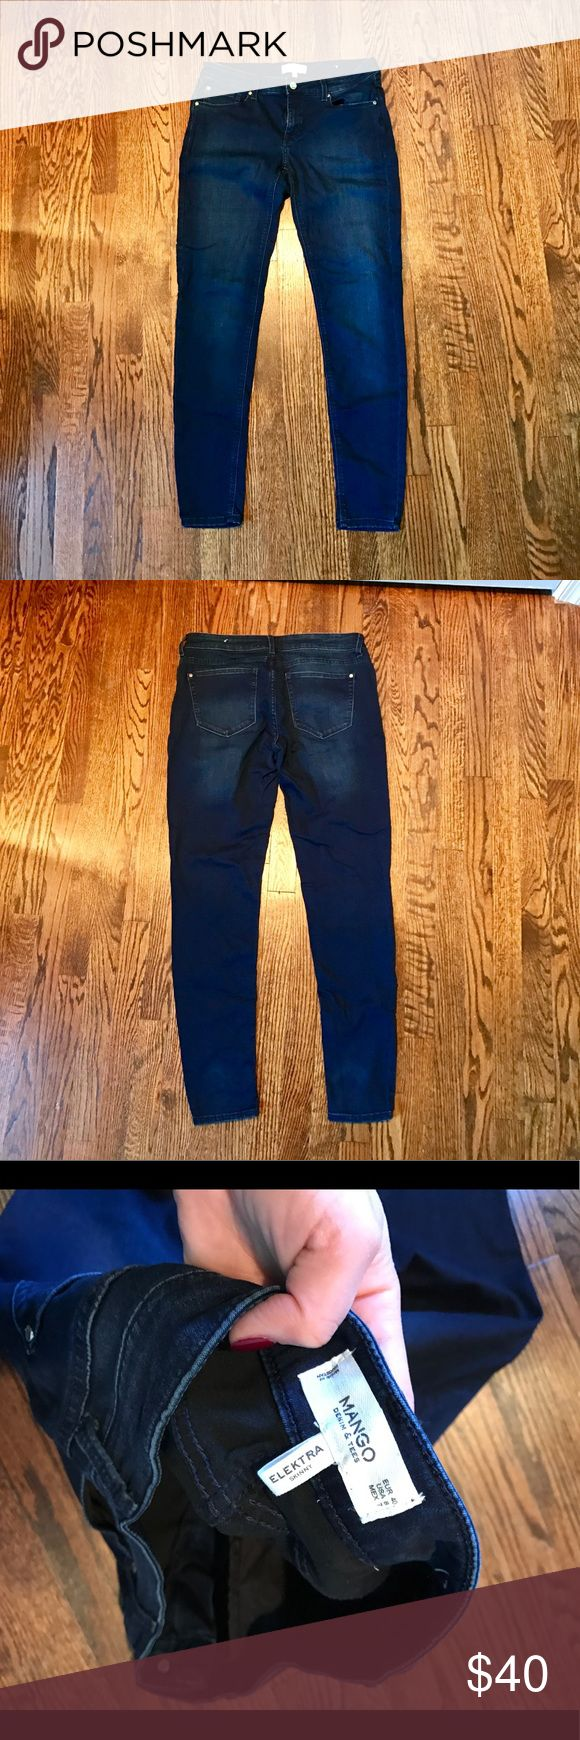 Mango Elektra Skinny Stretch Blue Jeans Sz 40 Sz 8 Mango Elektra Skinny Stretch Blue Jeans Sz 40 Sz 8 - only worn and washed once, extremely soft Fabric, mid rise, looser fit Mango Jeans Skinny